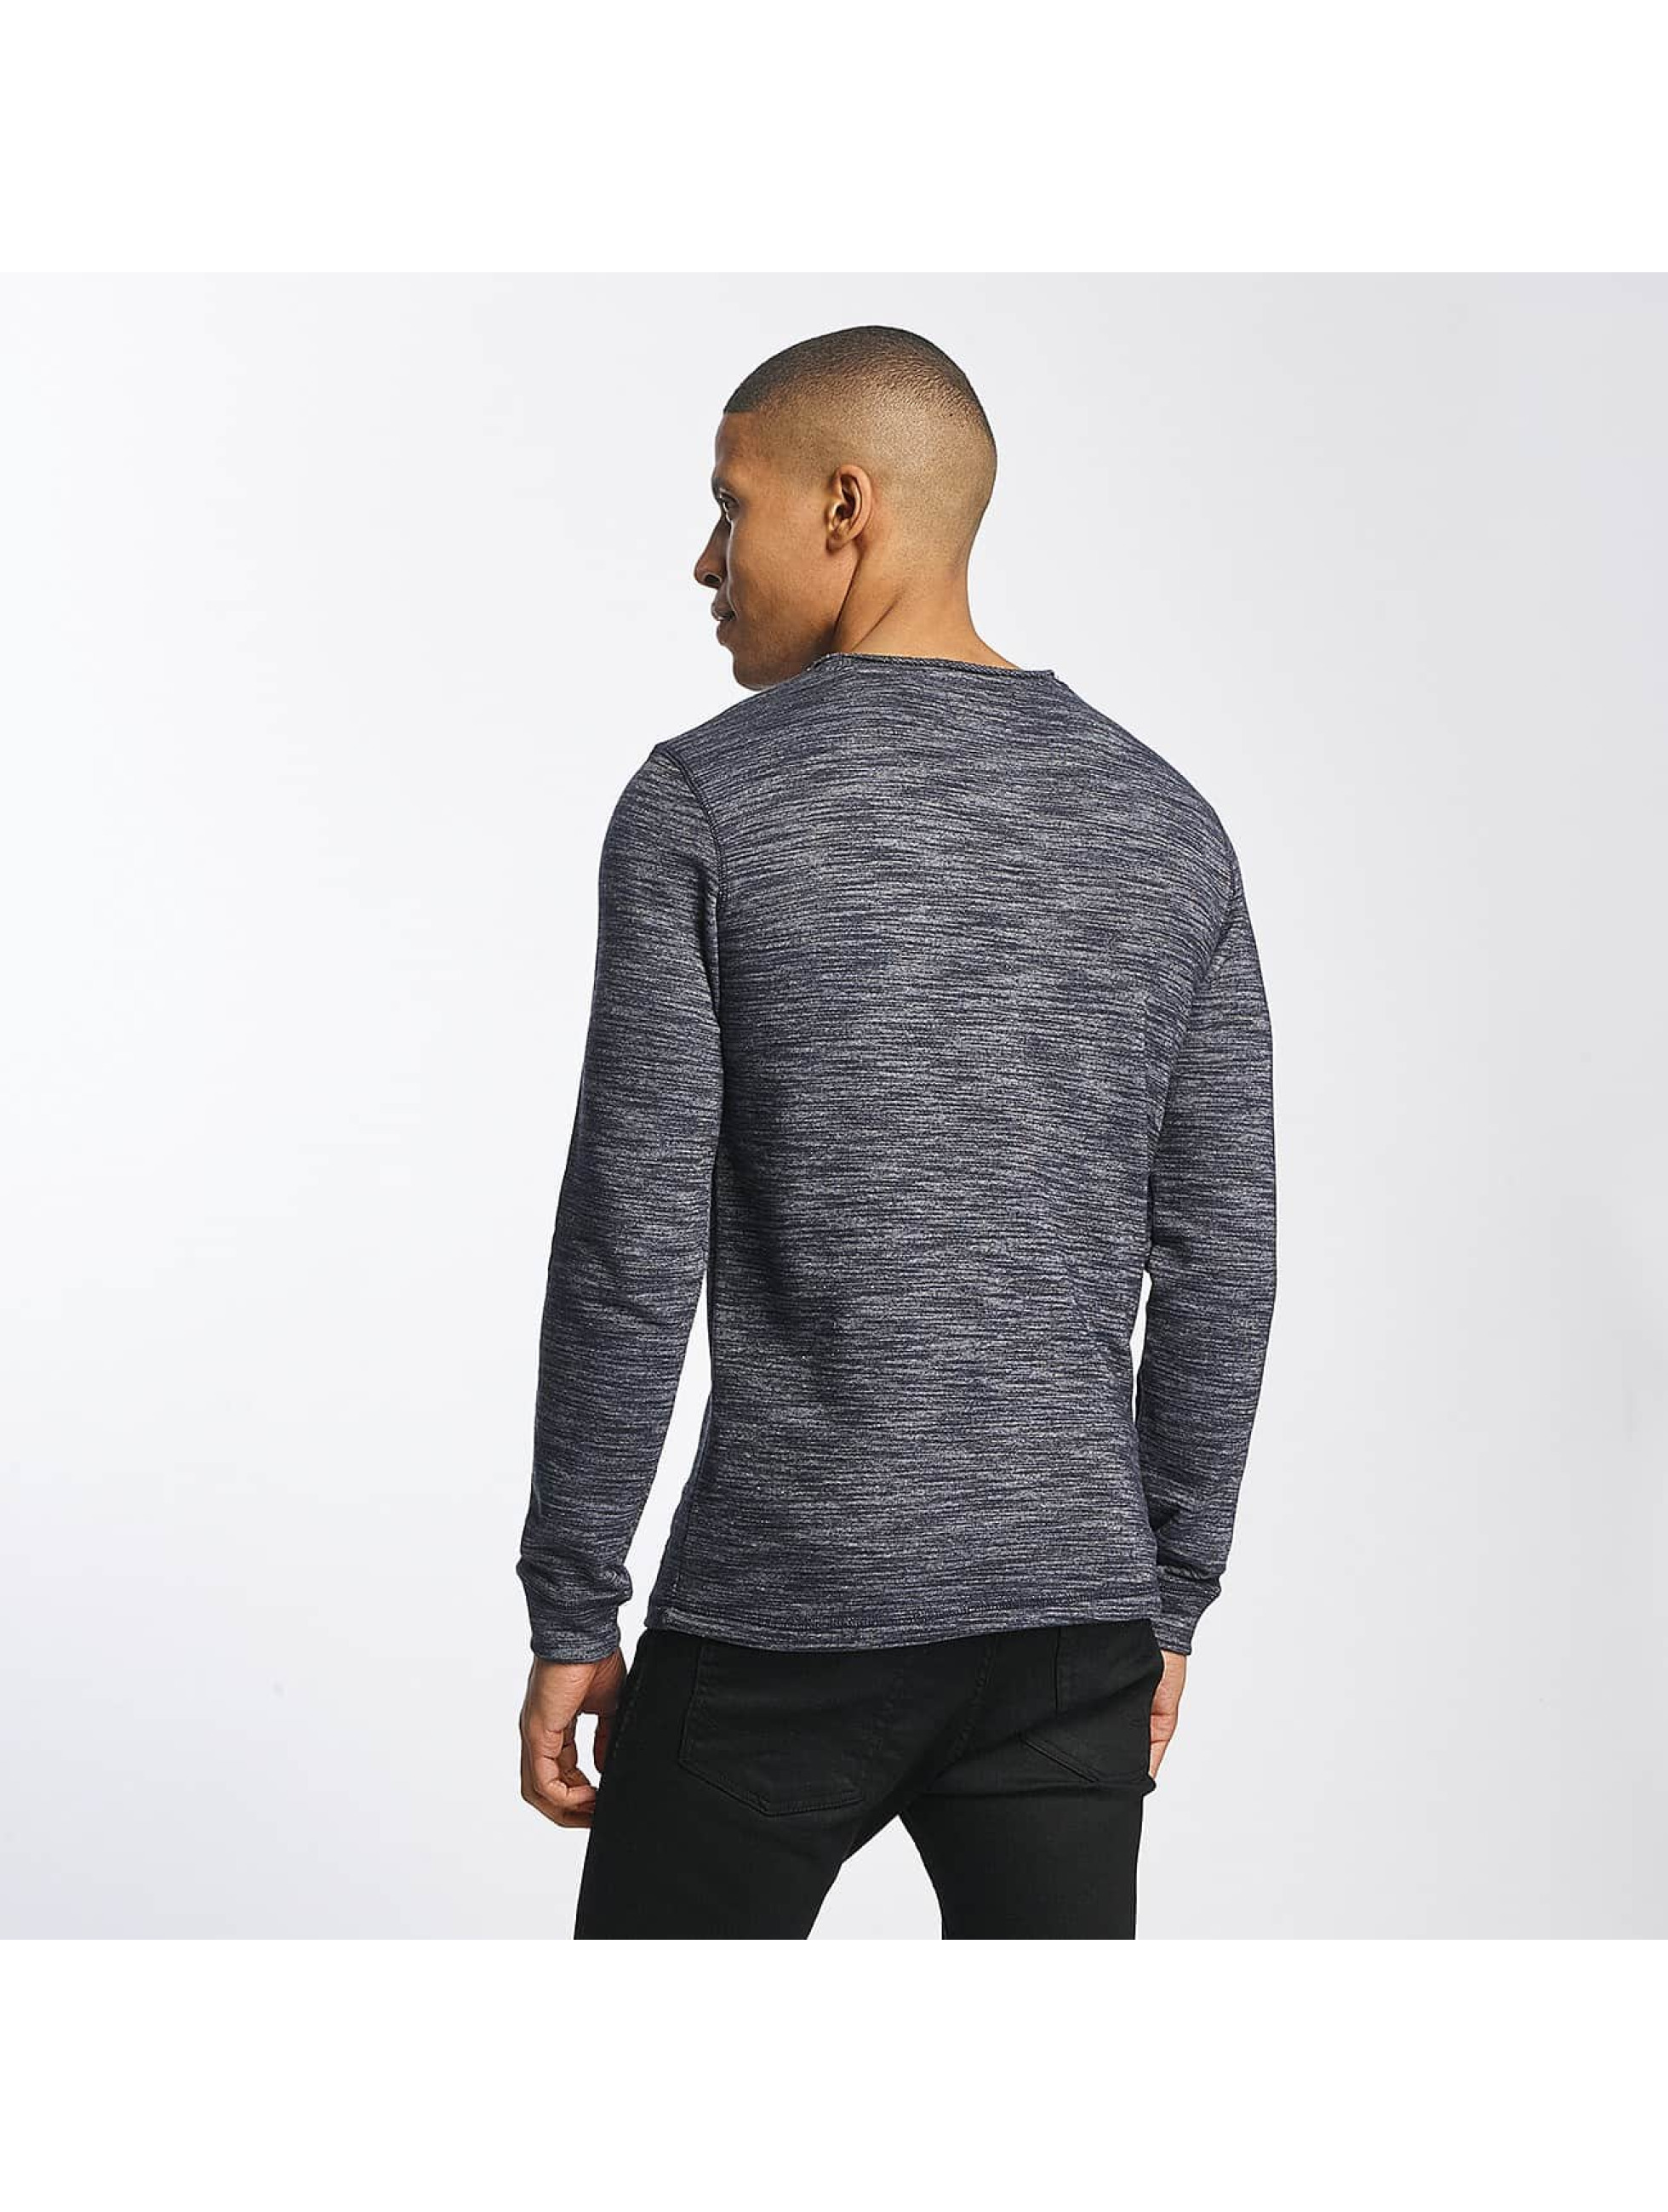 SHINE Original Pullover Malcom Pocket Inside Out blue